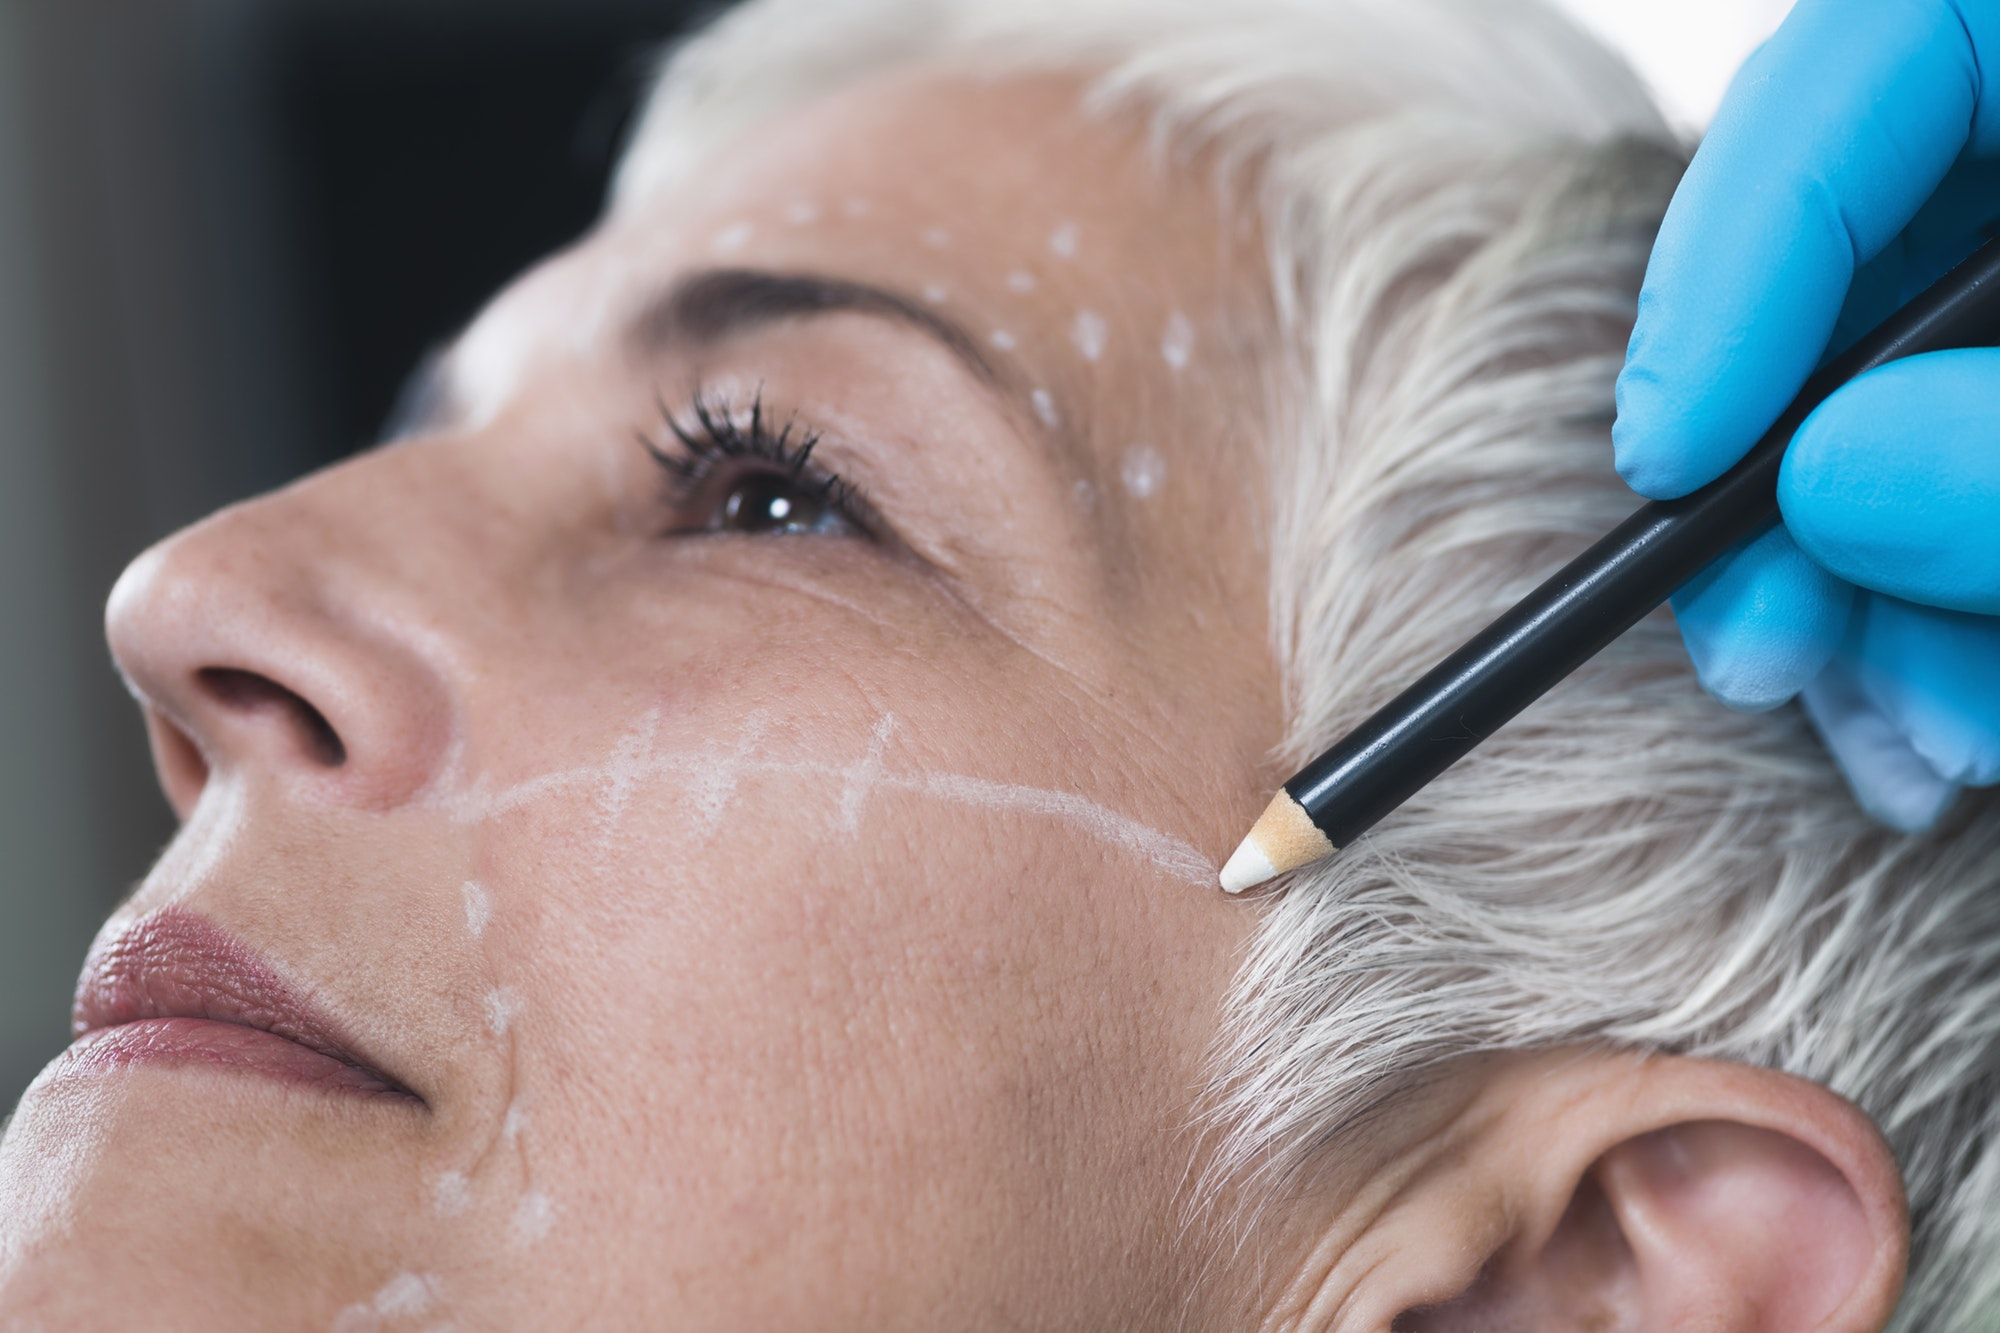 Anti-Aging Concept. Doctor's Hand Preparing Women's Face for Cos